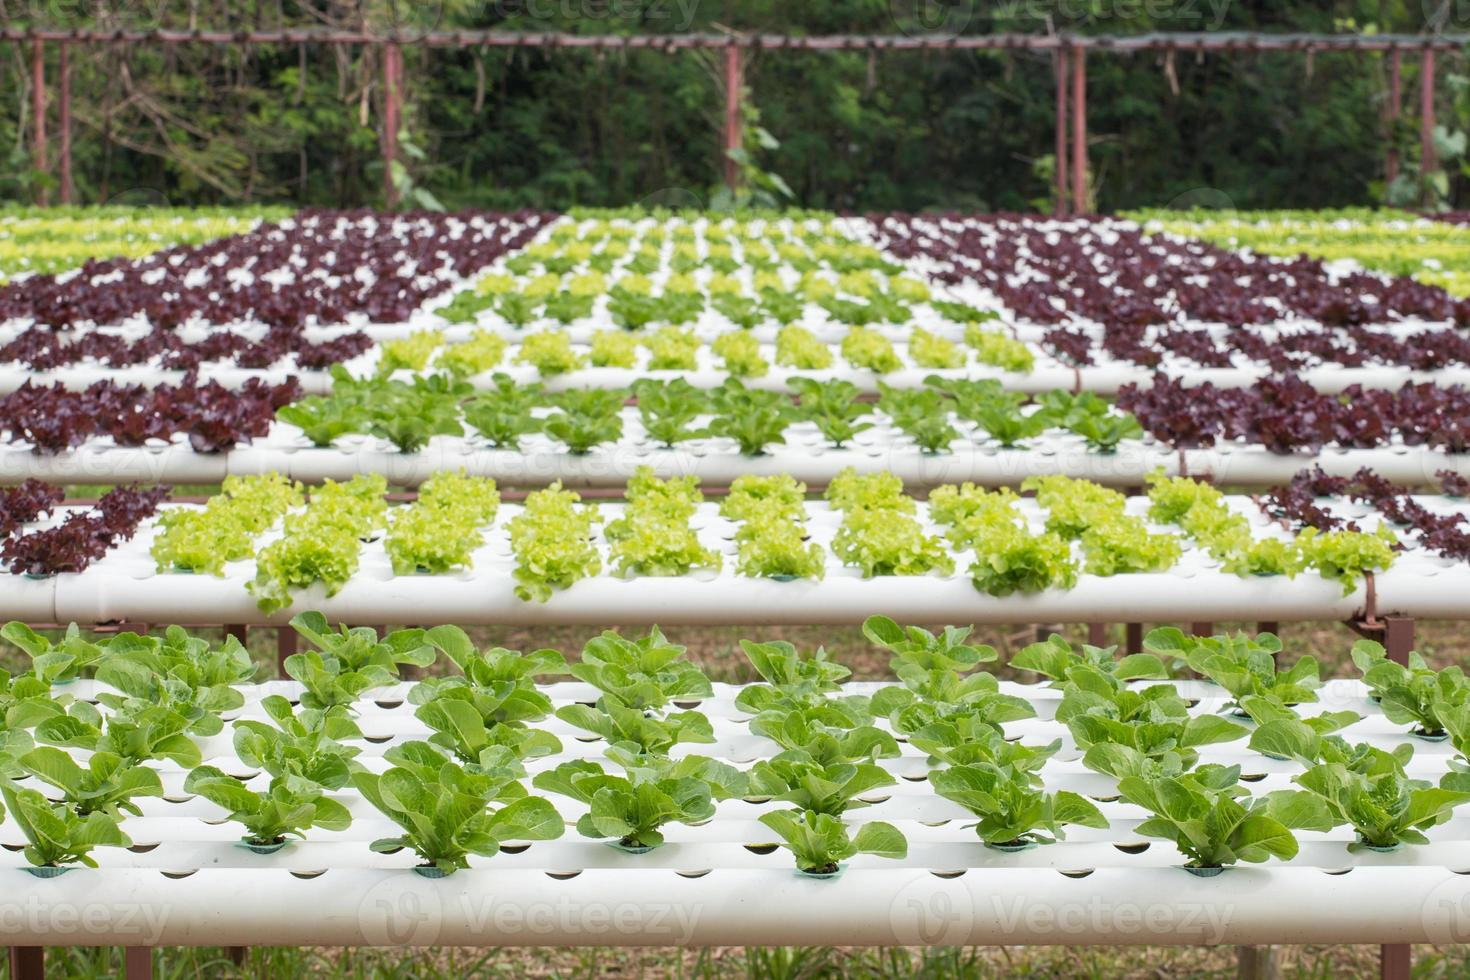 hydroponic Vegetables photo